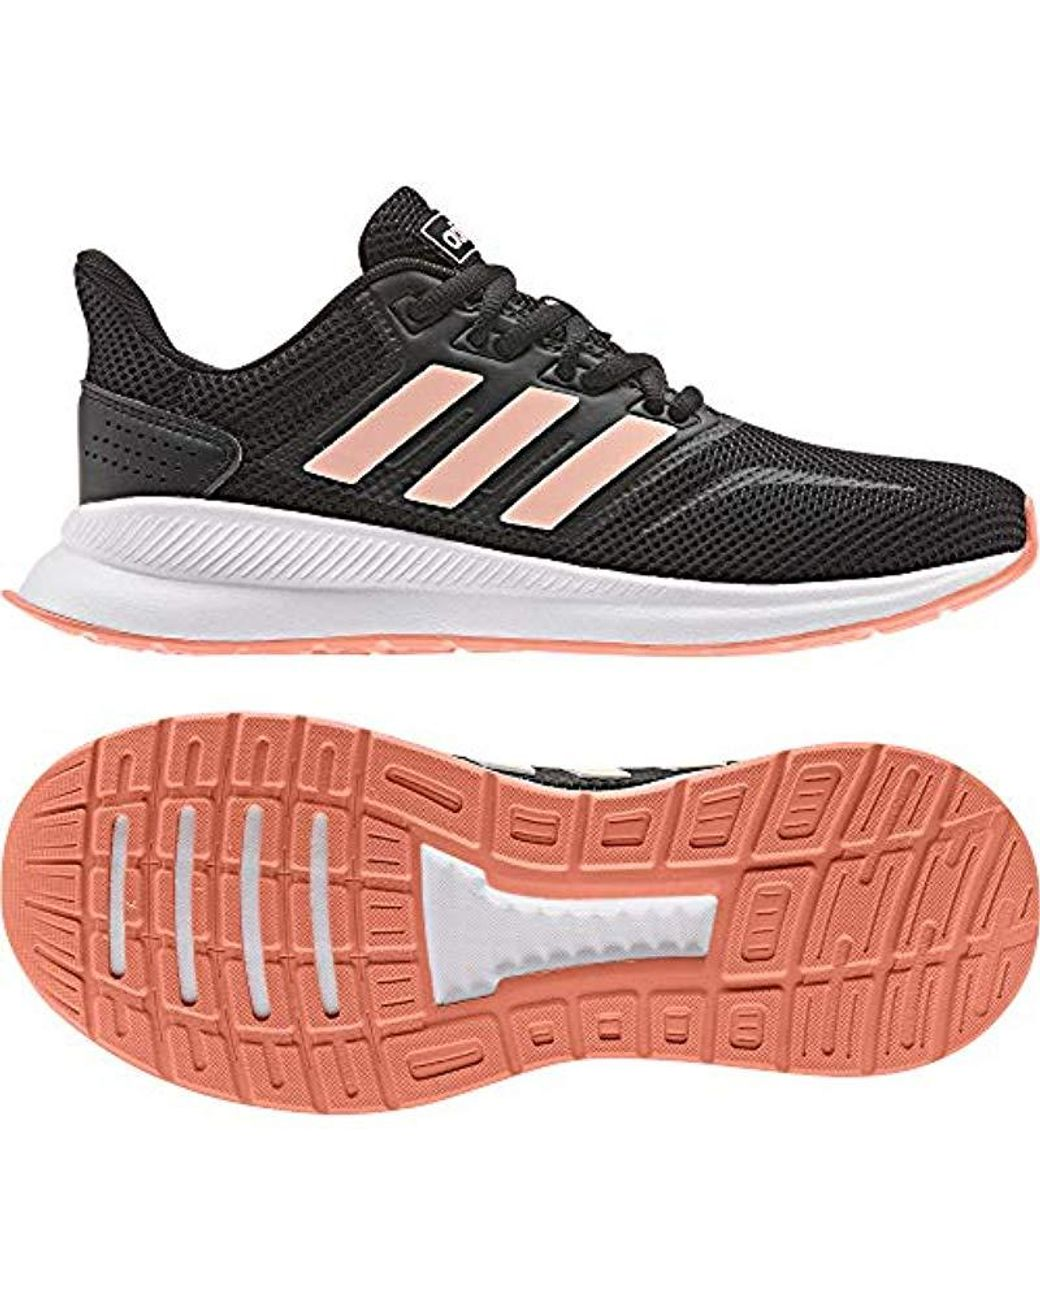 adidas Unisex Adults' Runfalcon K Competition Running Shoes